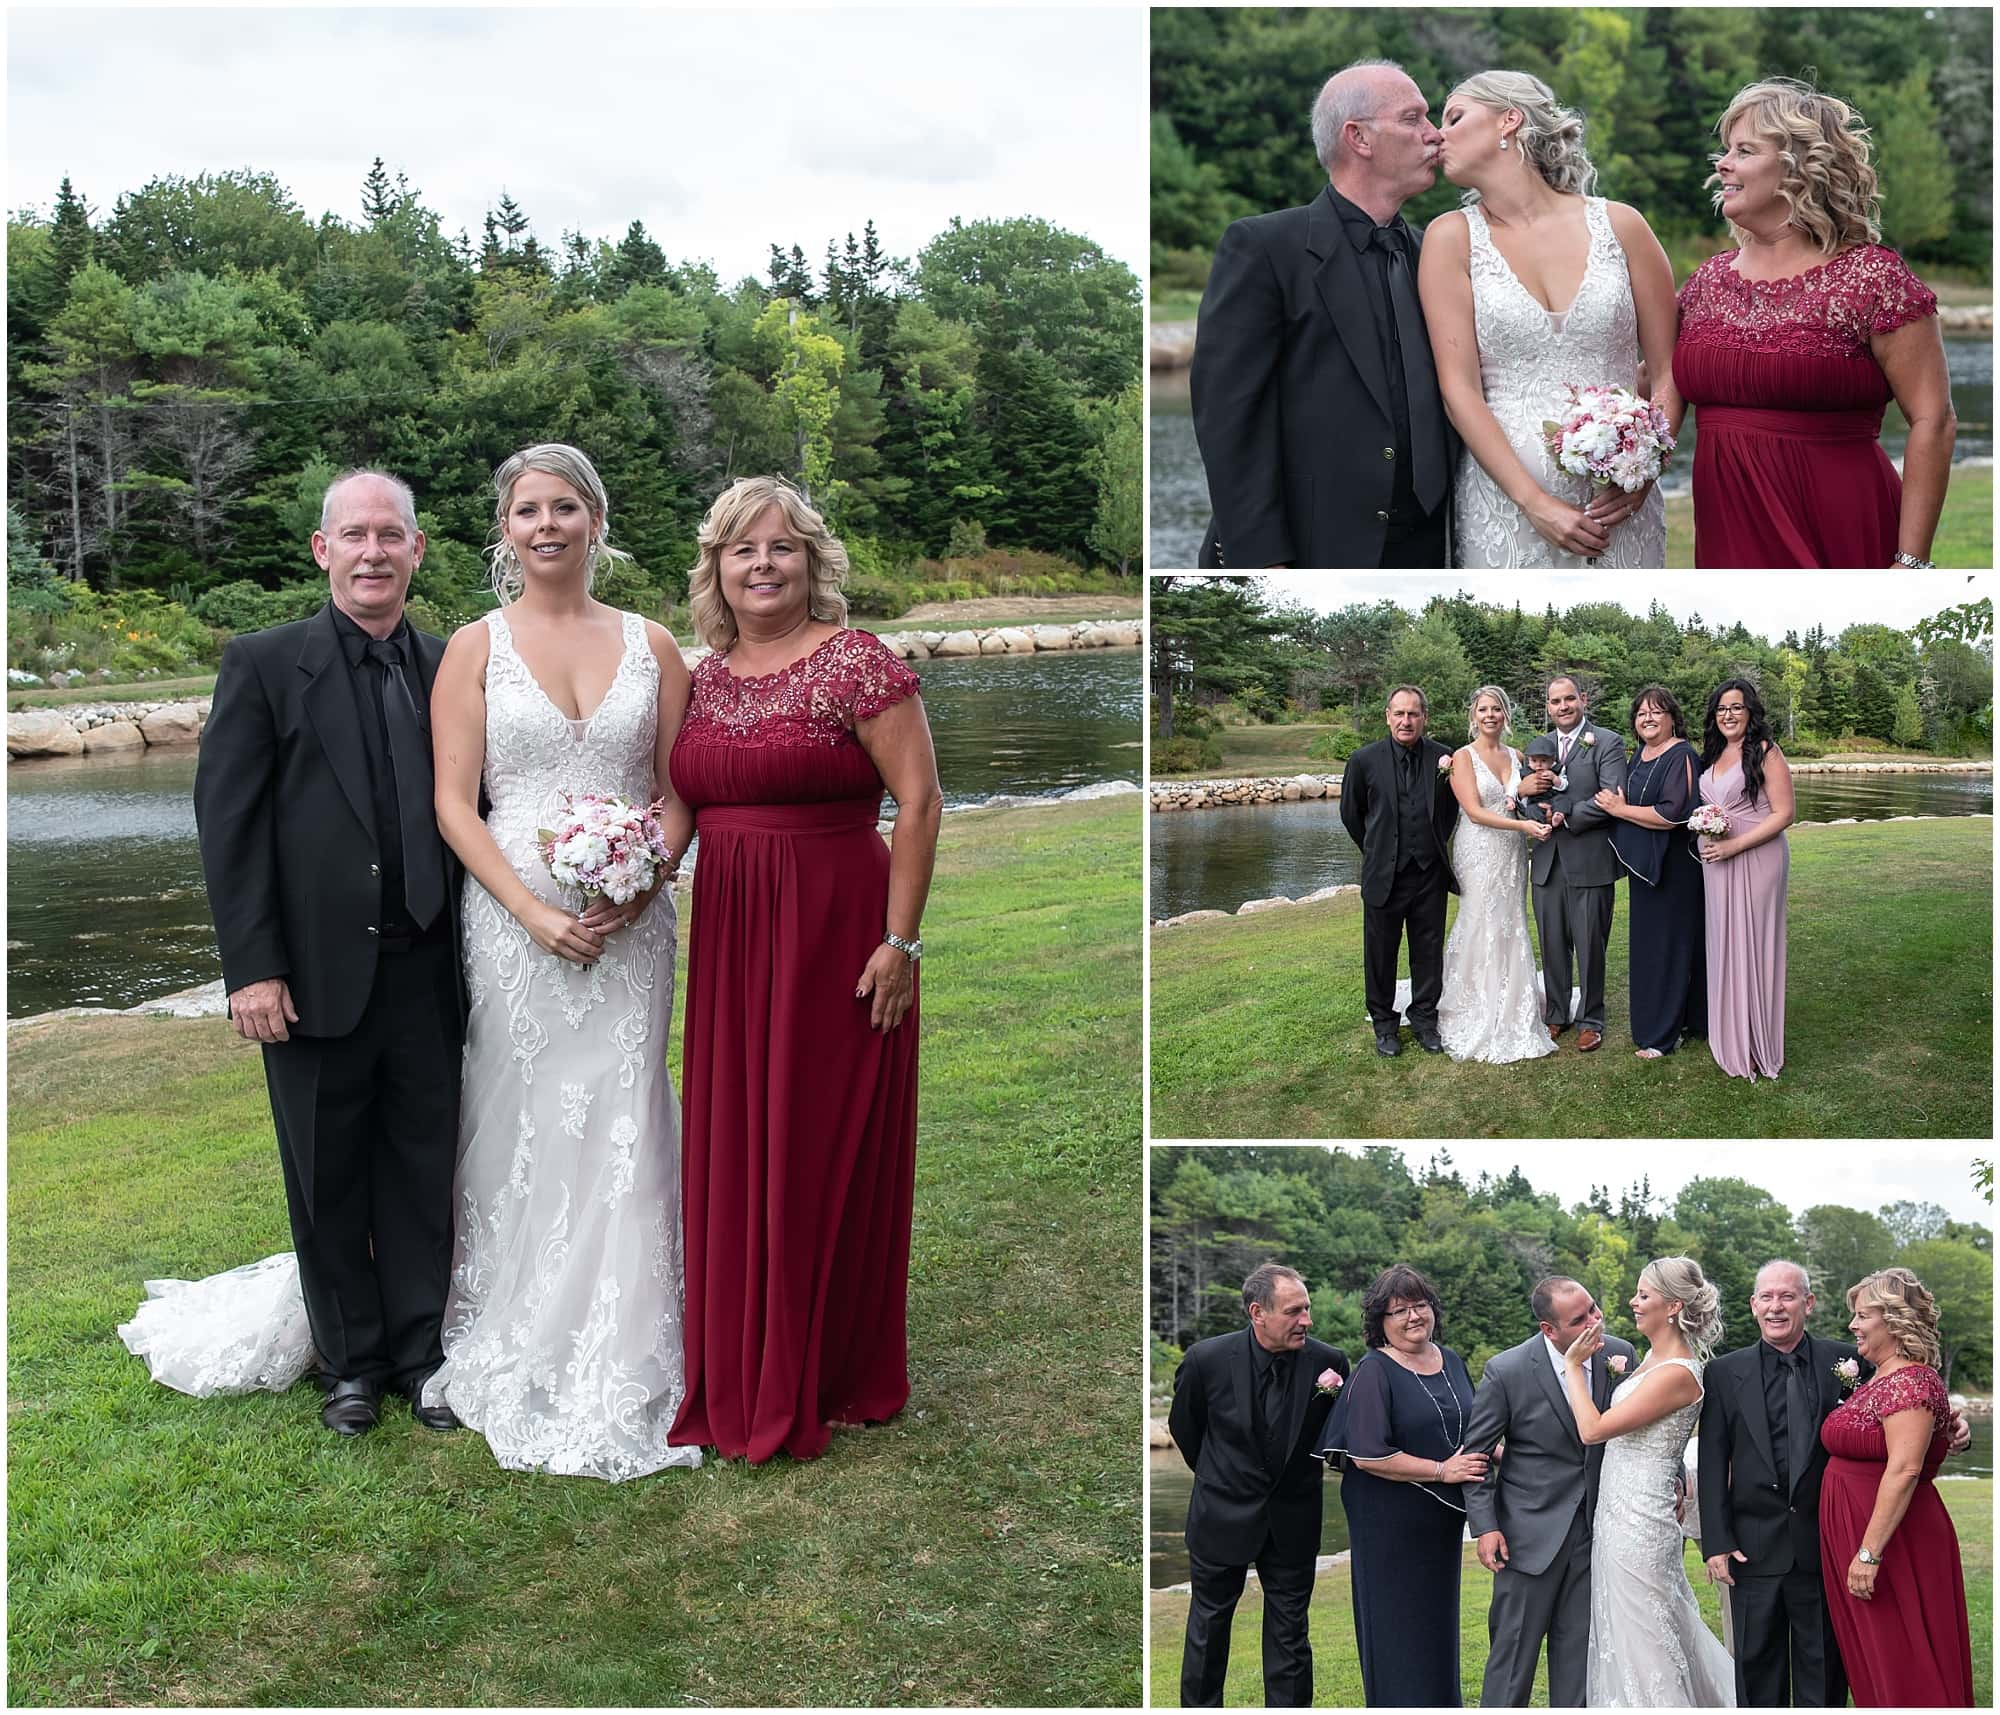 The bride and groom during family wedding photos at a backyard wedding in Halifax NS.